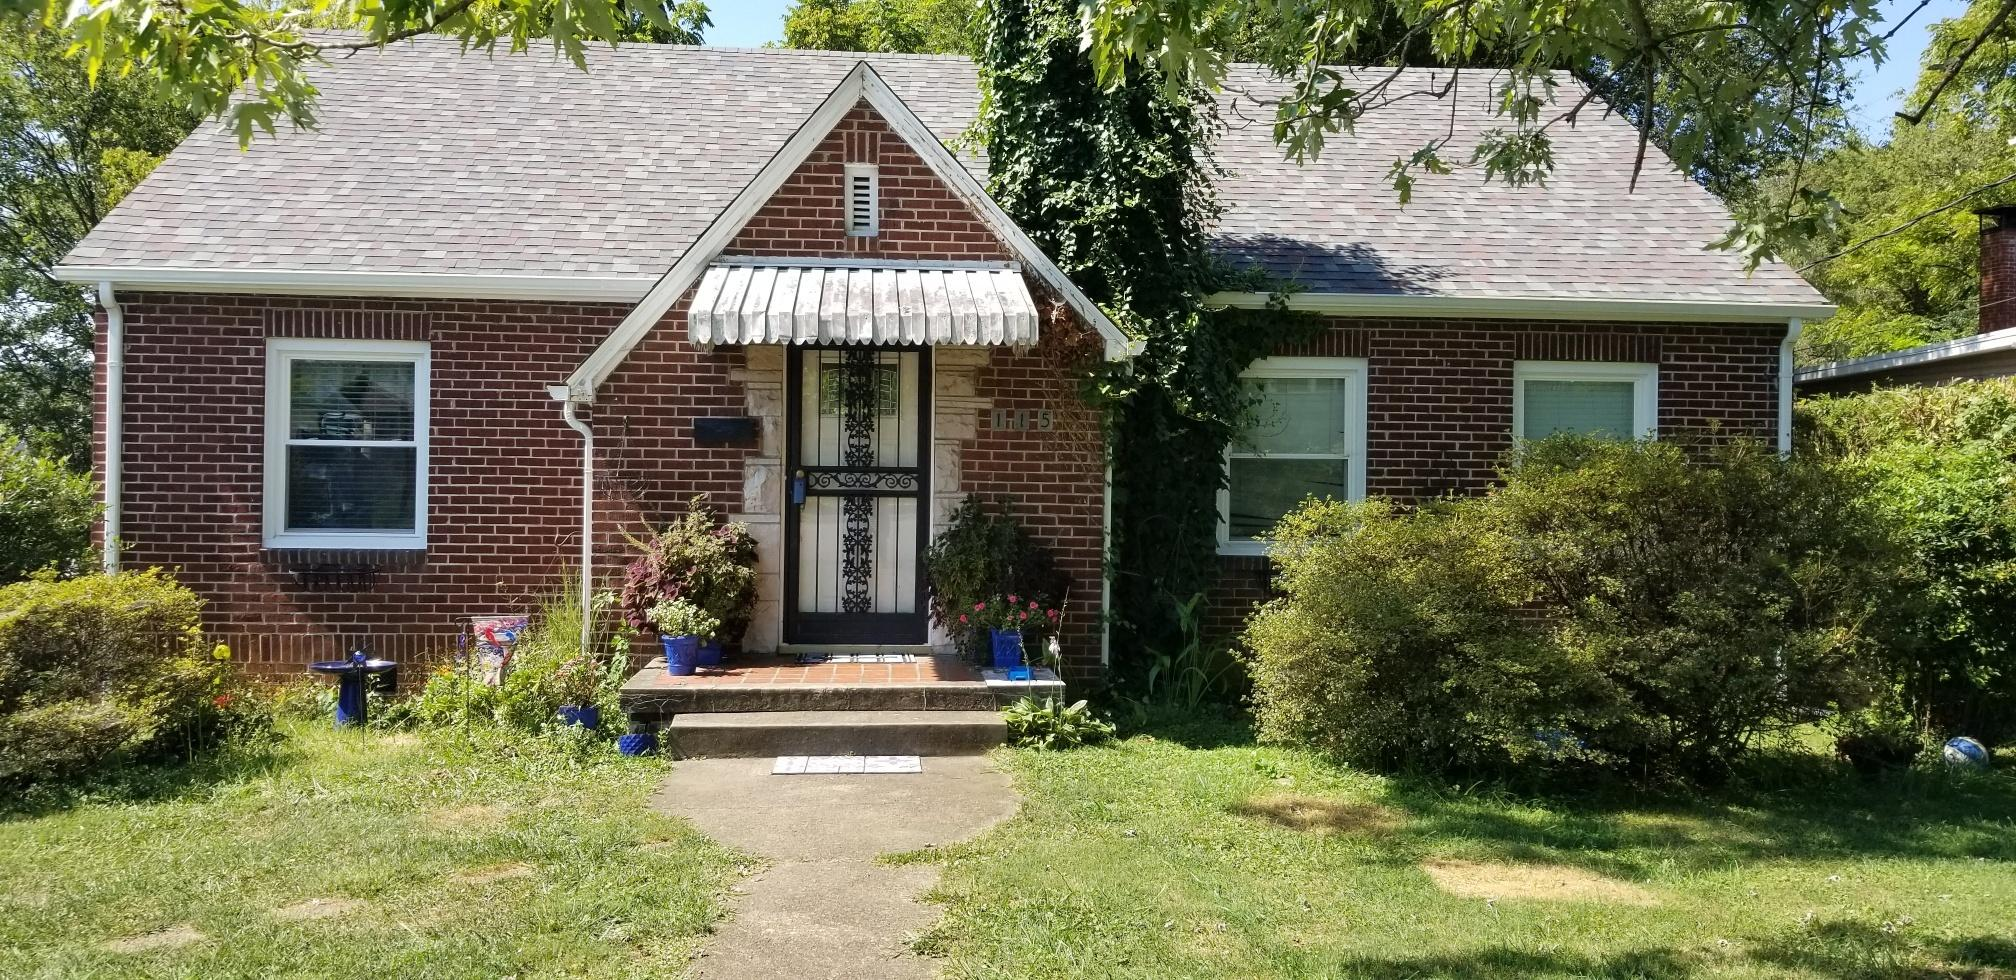 115 Hillcrest Drive, Knoxville, Tennessee 37918, 3 Bedrooms Bedrooms, ,1 BathroomBathrooms,Single Family,For Sale,Hillcrest,1093901